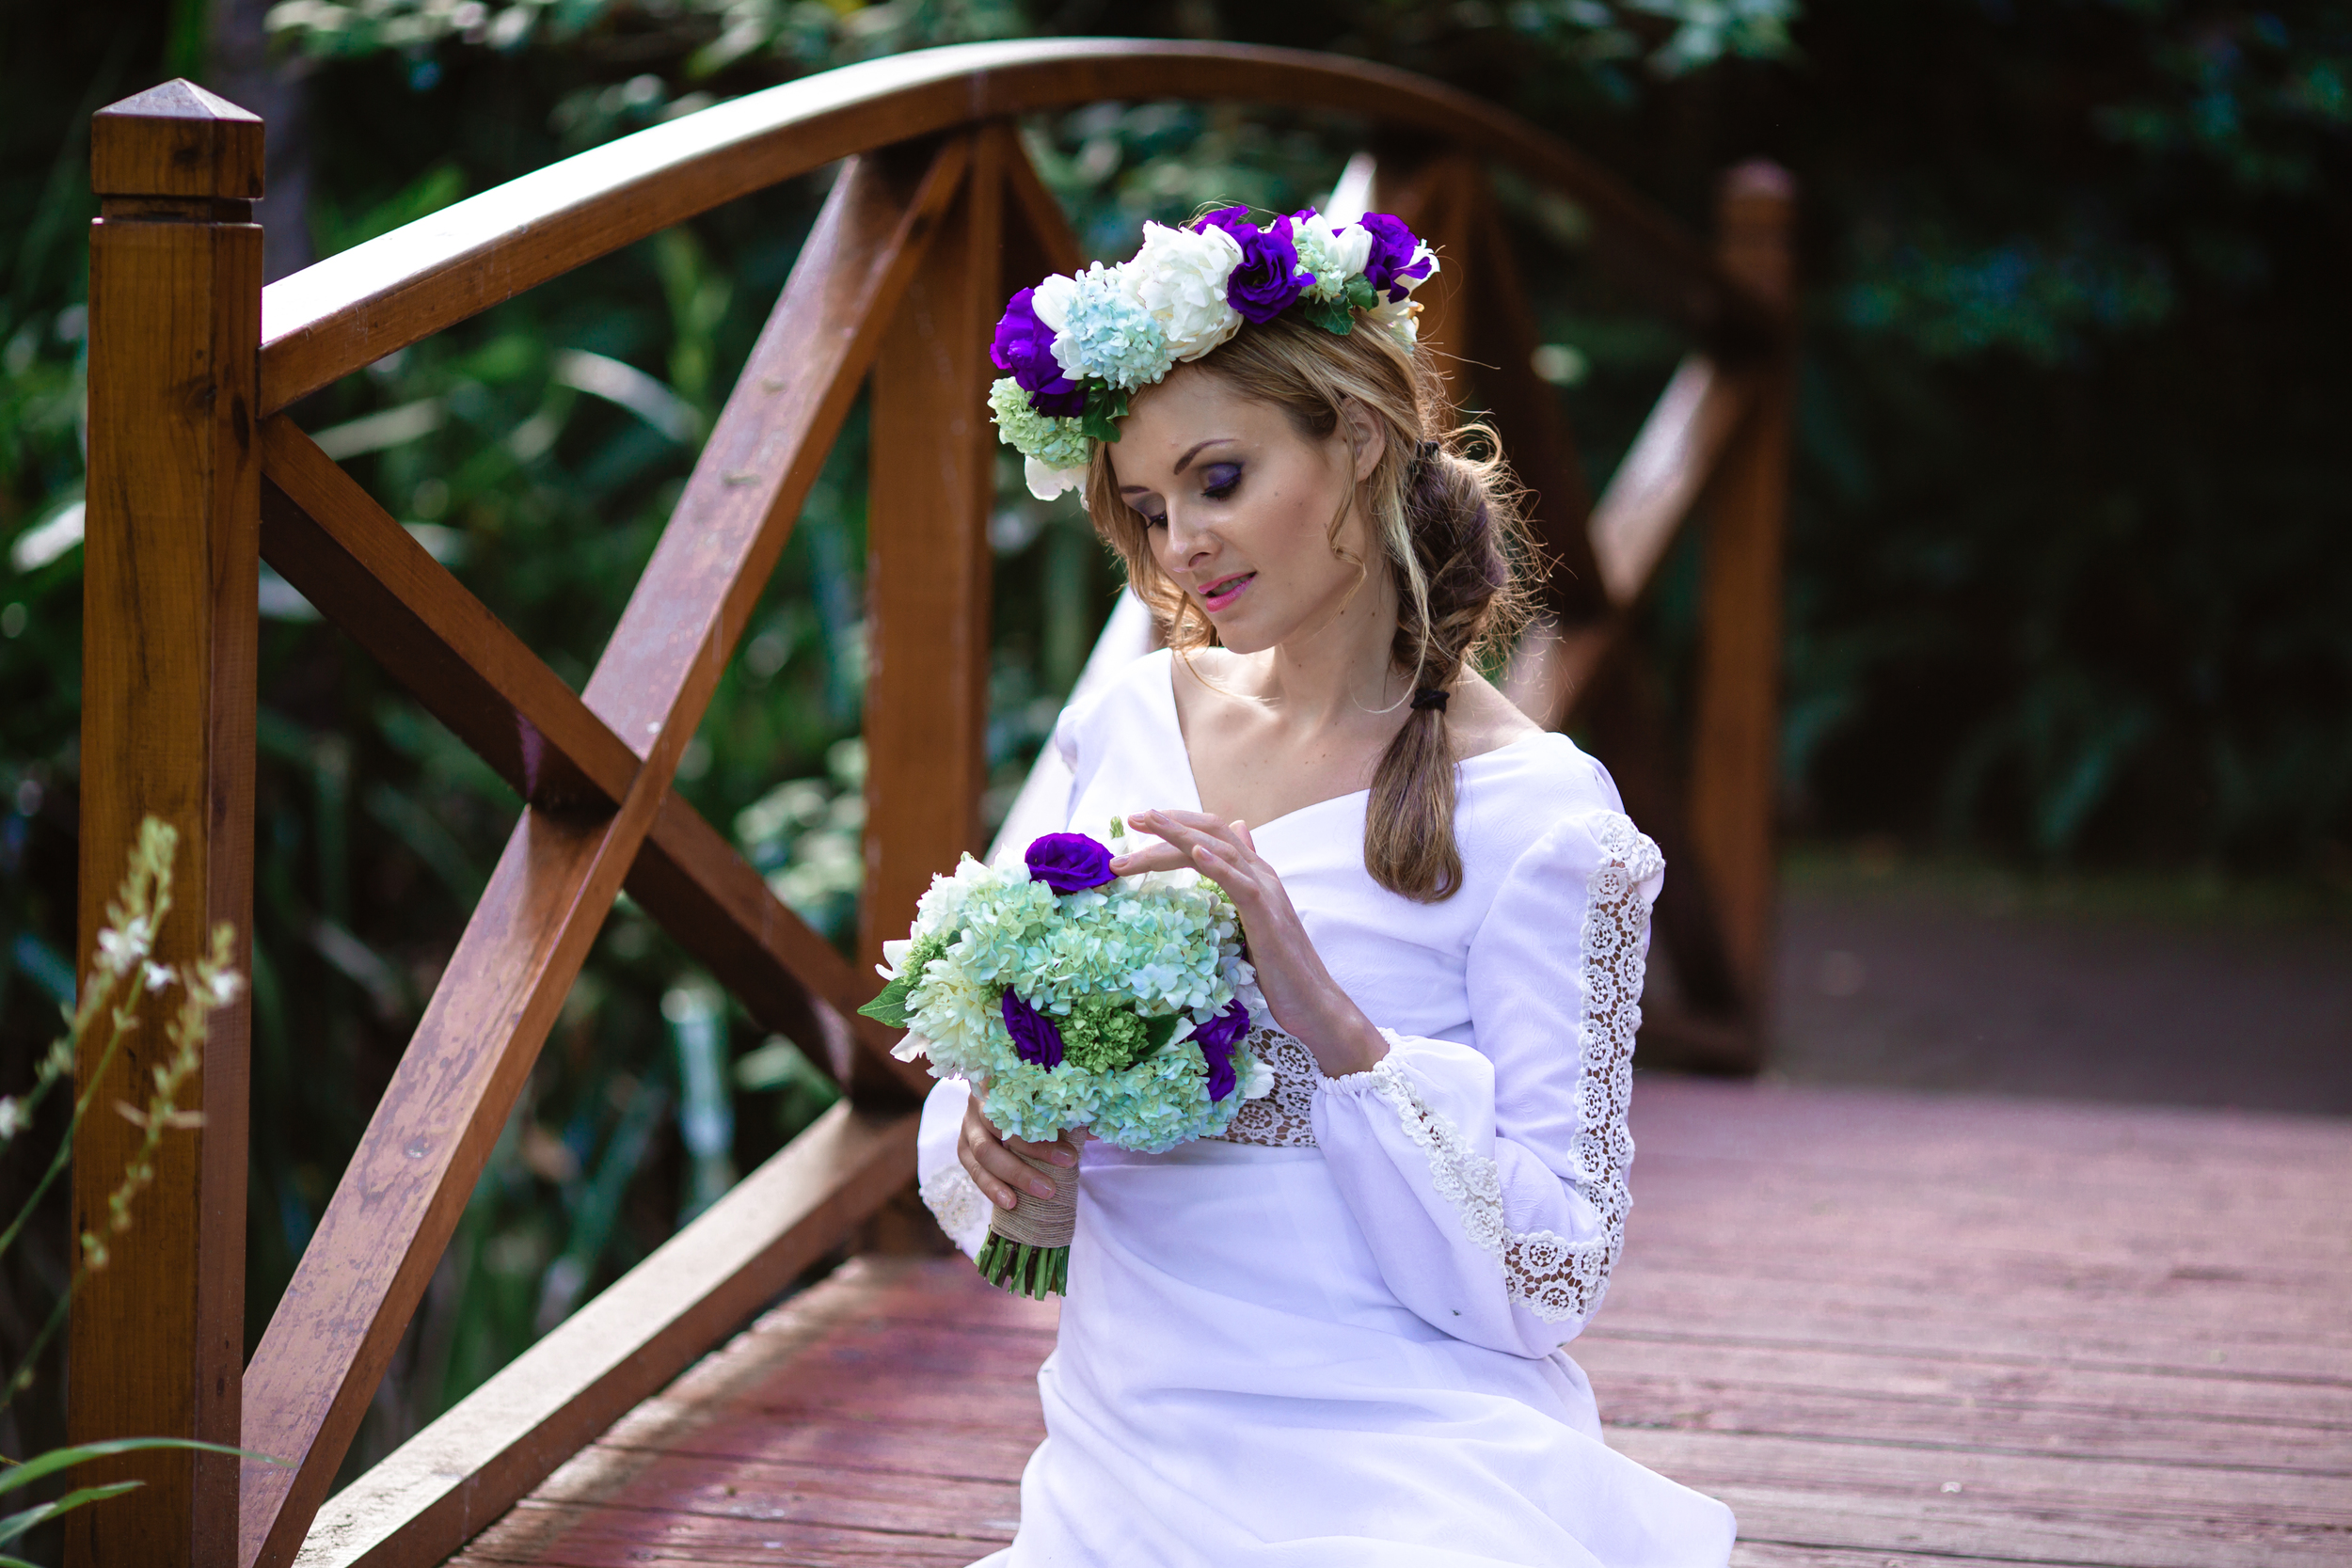 Garden Wedding - Floral Crown and bridal bouquet 18.jpg